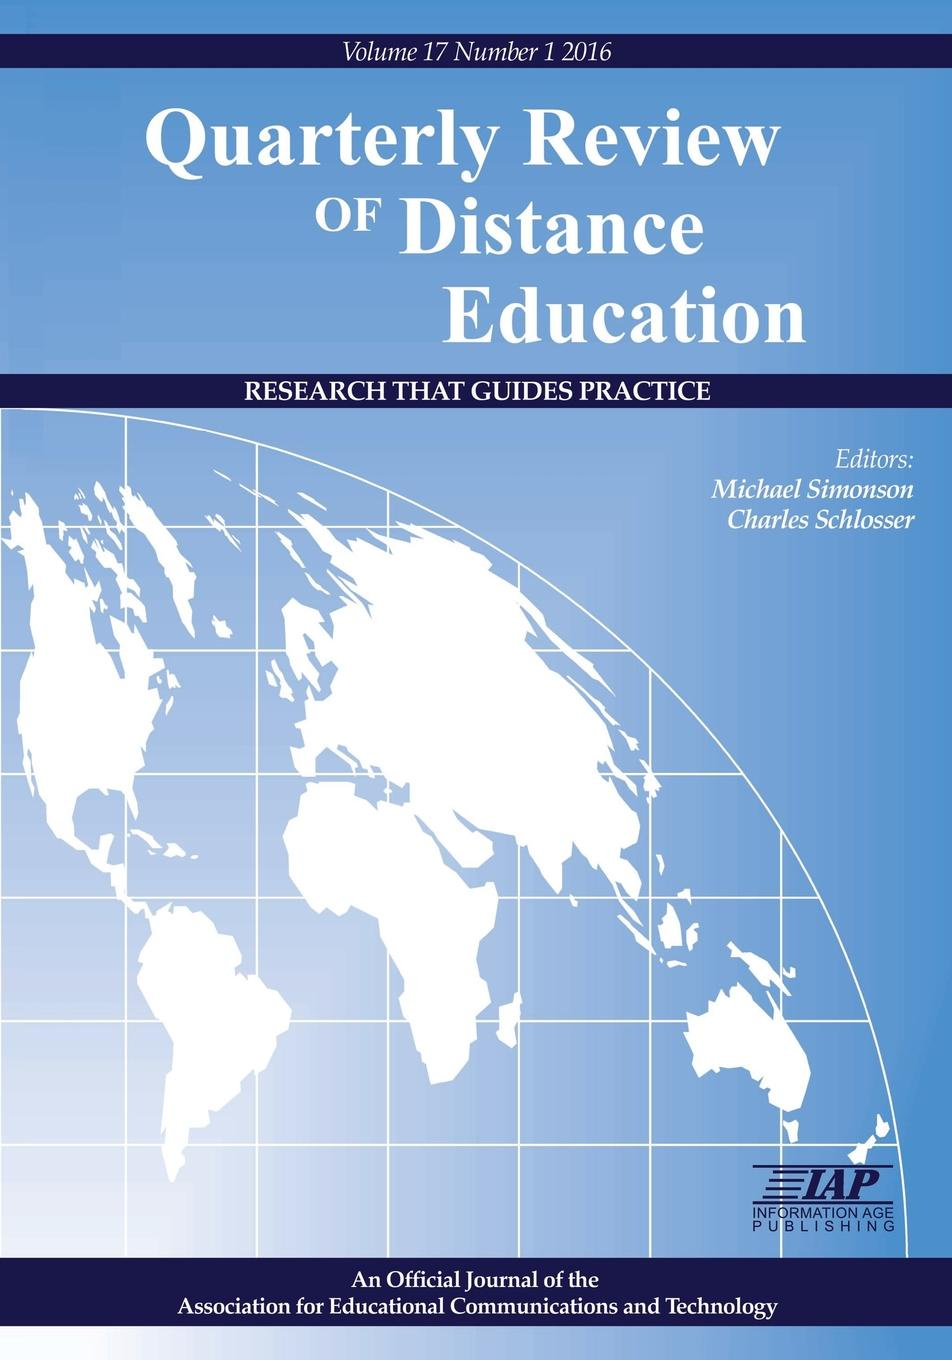 Quarterly Review of Distance Education Research That Guides Practice Volume 17 Number 1 2016 the new york quarterly number 24